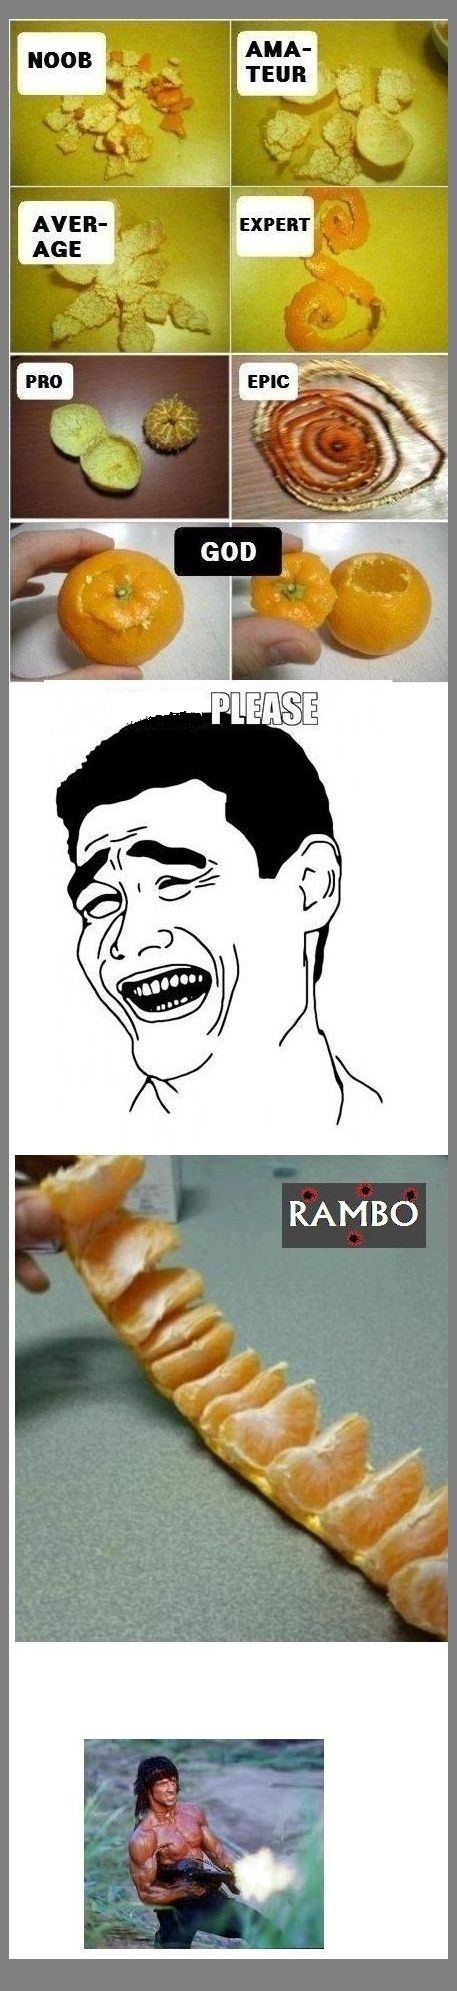 Want to be Rambo..? - Posted in Funny, Troll comics and LOL Images - Entertain Club